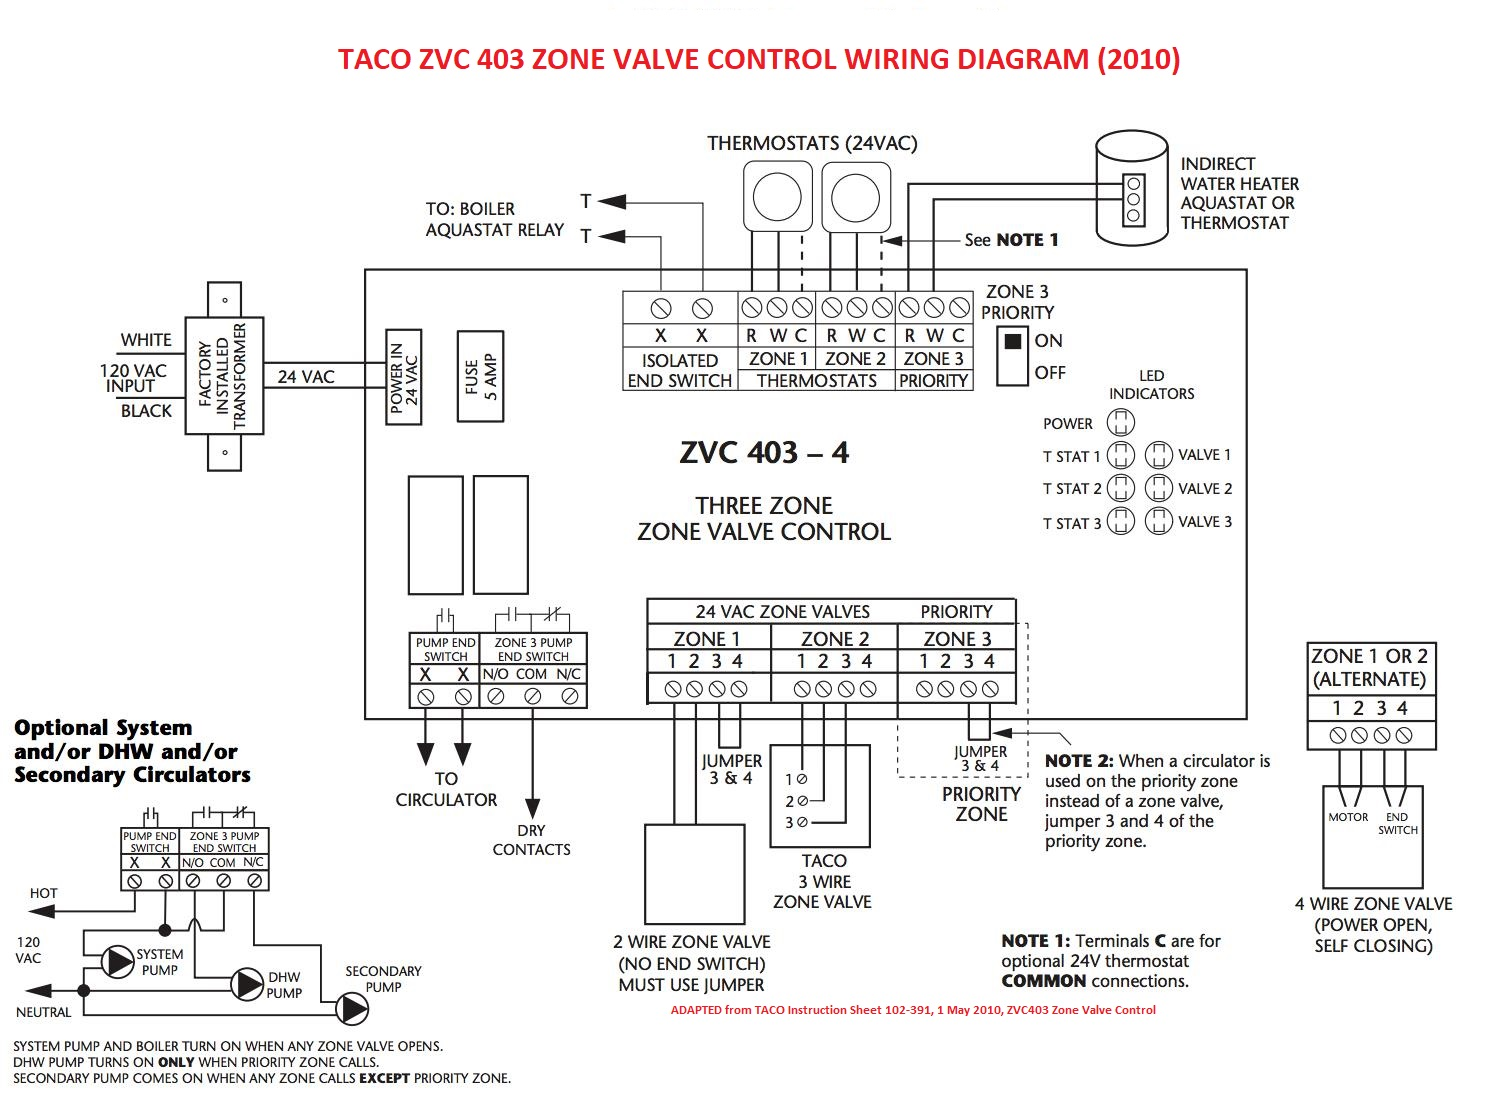 Zone valve wiring installation instructions guide to heating taci zvc493 wiring diagram click to enlarge at inspectapedia pooptronica